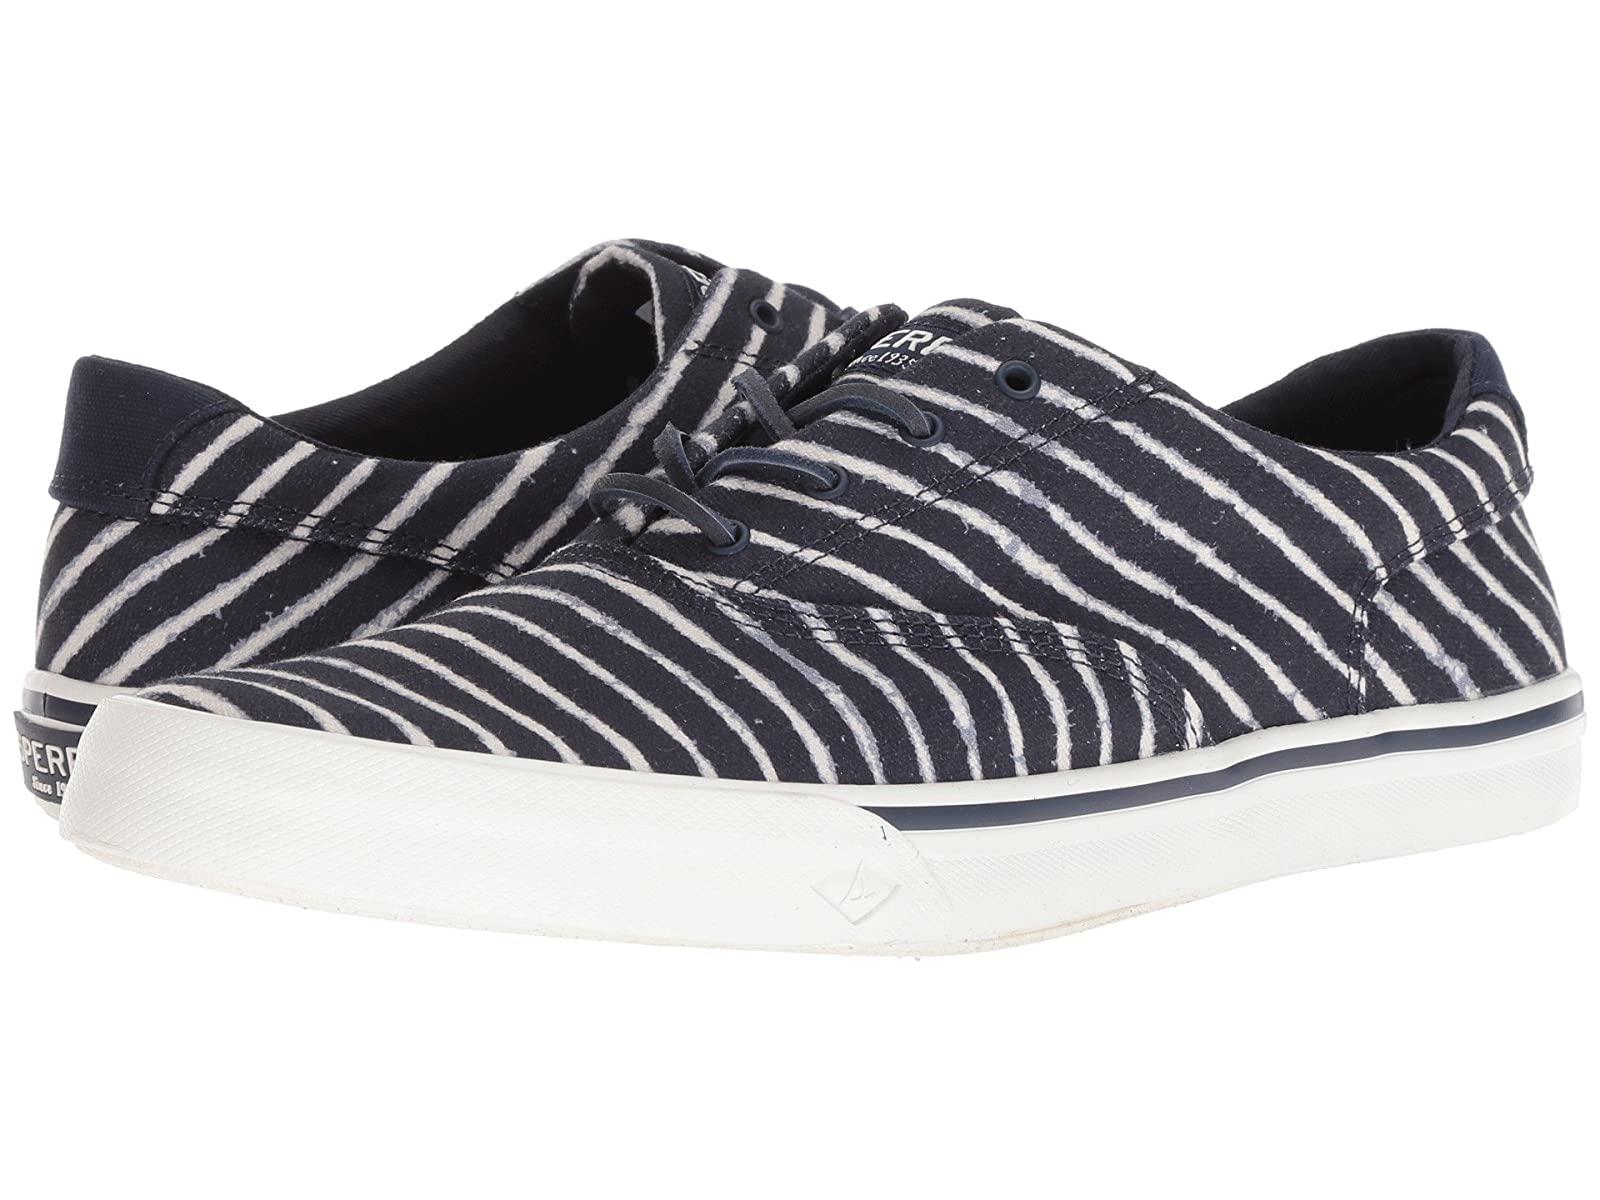 Sperry Striper II CVO IndigoAtmospheric grades have affordable shoes